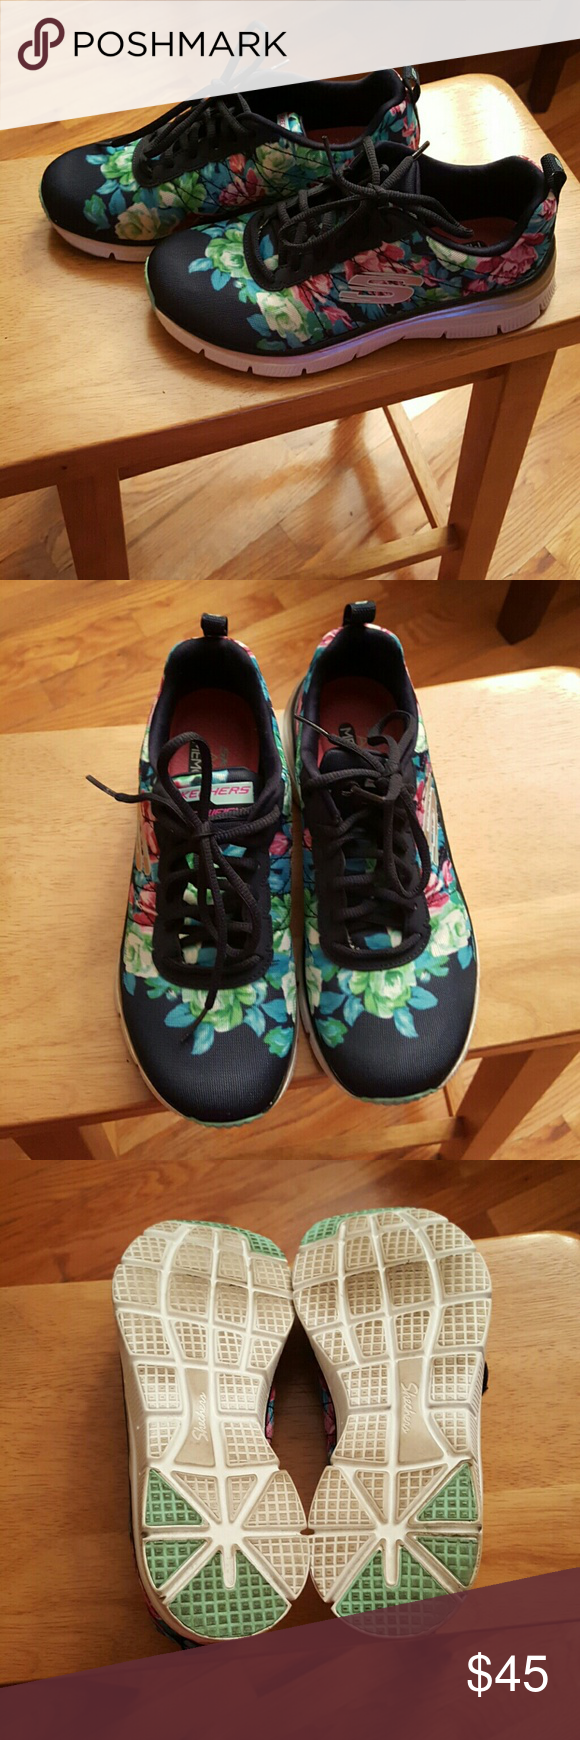 Memory foam skechers Floral memory foam skechers. These are so comfortable and make you feel like you are walking on air!!! Unfortunately I'm not a huge fan of the print as I got them as a gift. Sneakers have only been worn twice and have been sitting in my closet ever since. Skechers Shoes Sneakers